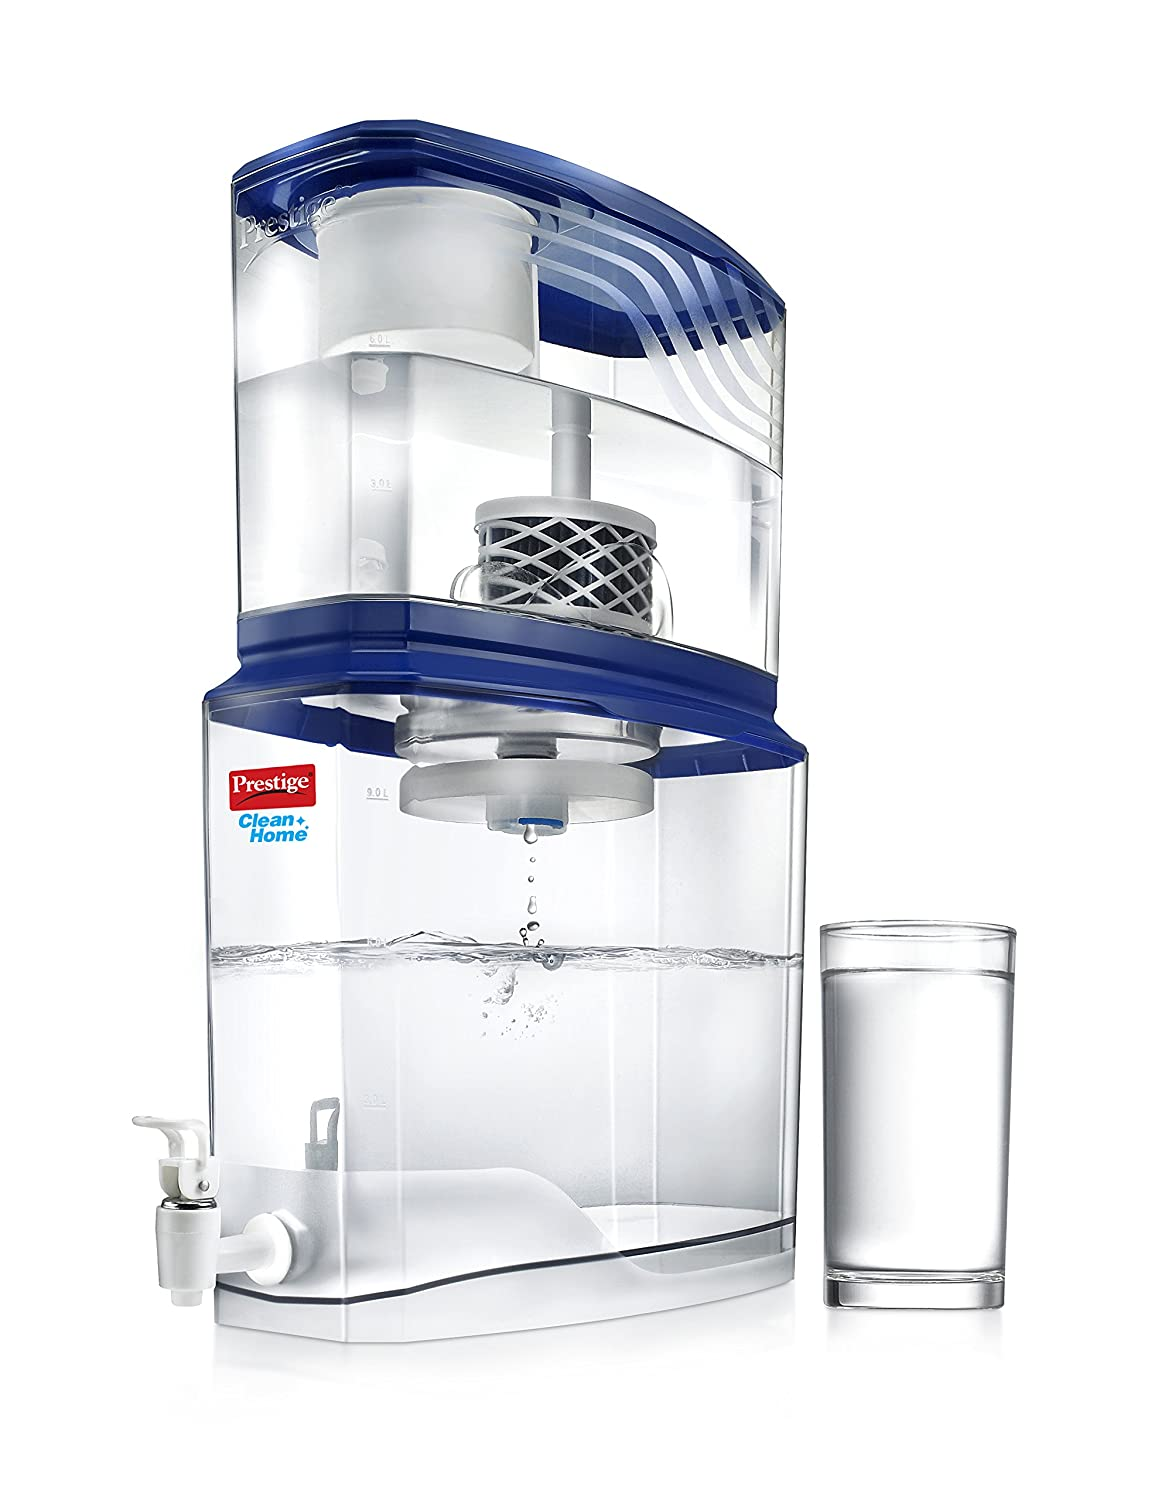 Prestige Non-Electric Acrylic Water Purifier PSWP 2.0, 18 L